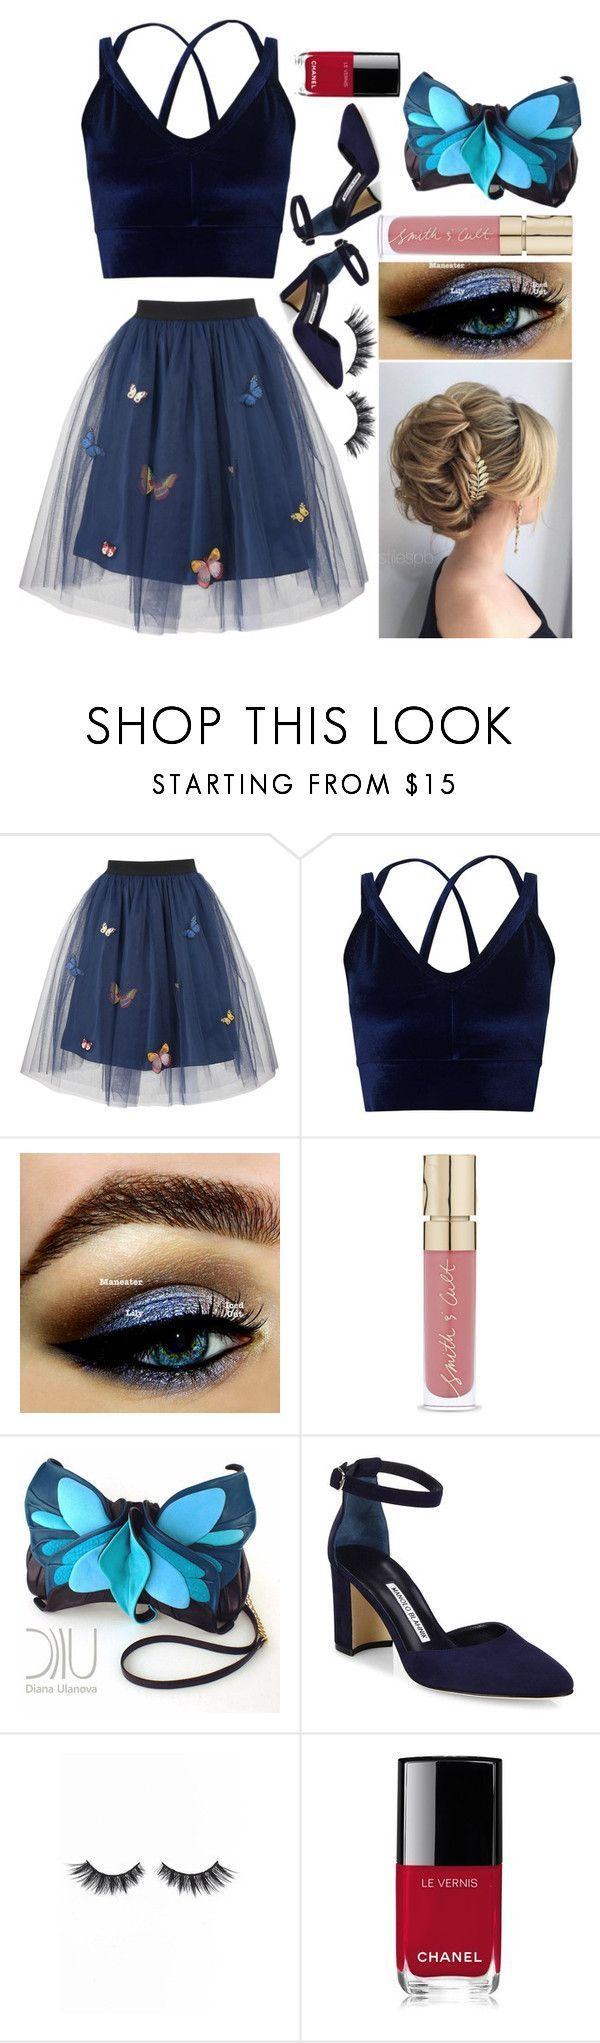 """Ashlee: July 31, 2017"" by disneyfreaks39 ❤ liked on Polyvore featuring George J. Love, Miss Selfridge, Smith & Cult, Manolo Blahnik, Violet Voss and Chanel #manoloblahnik2017"